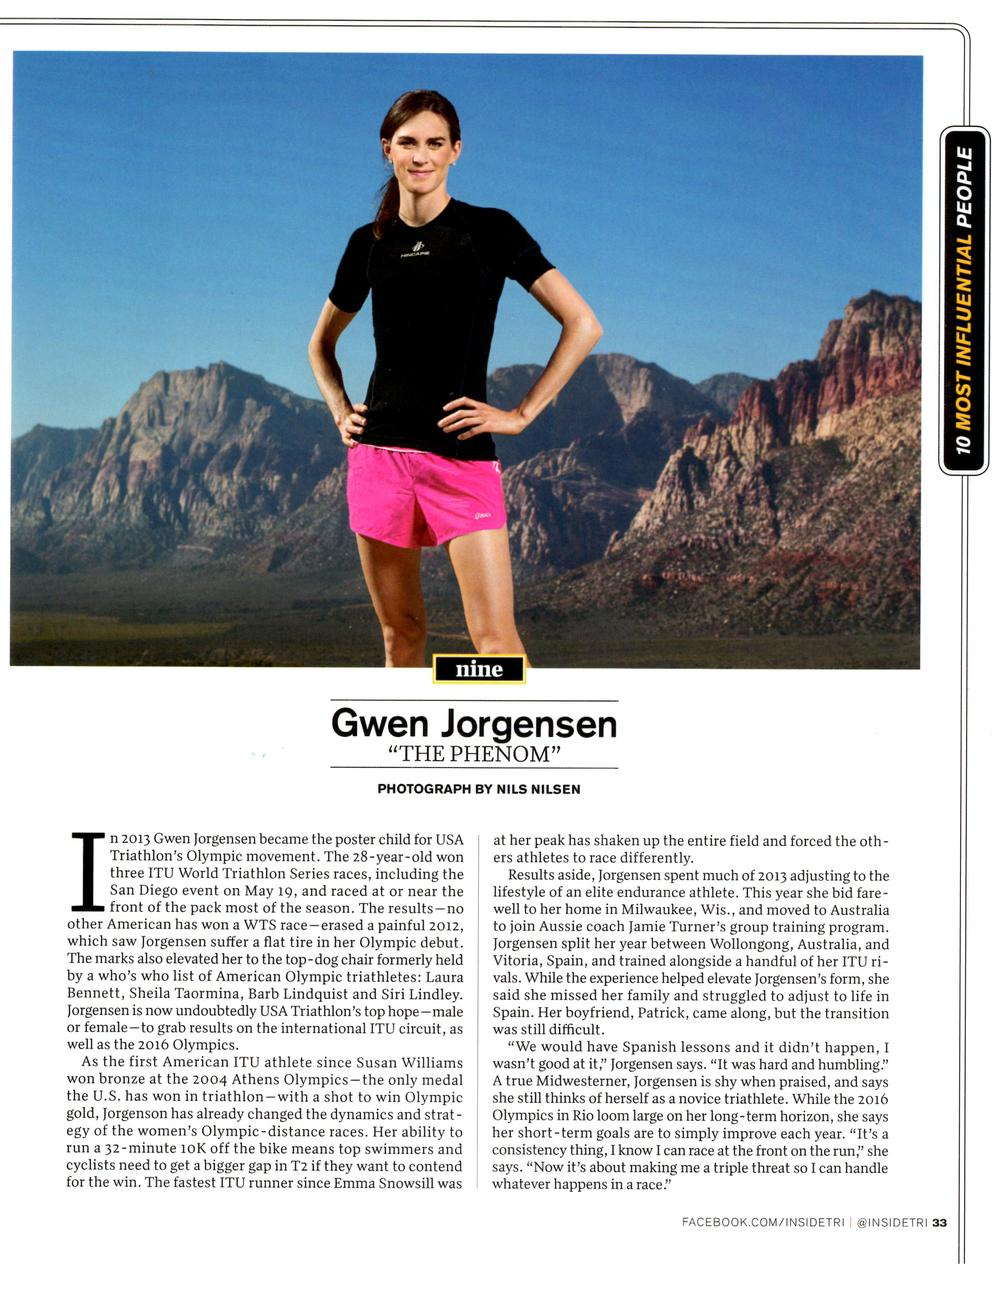 G.Jorgensen Inside Tri Dec 2013 10 Most Influential Page 2.jpg